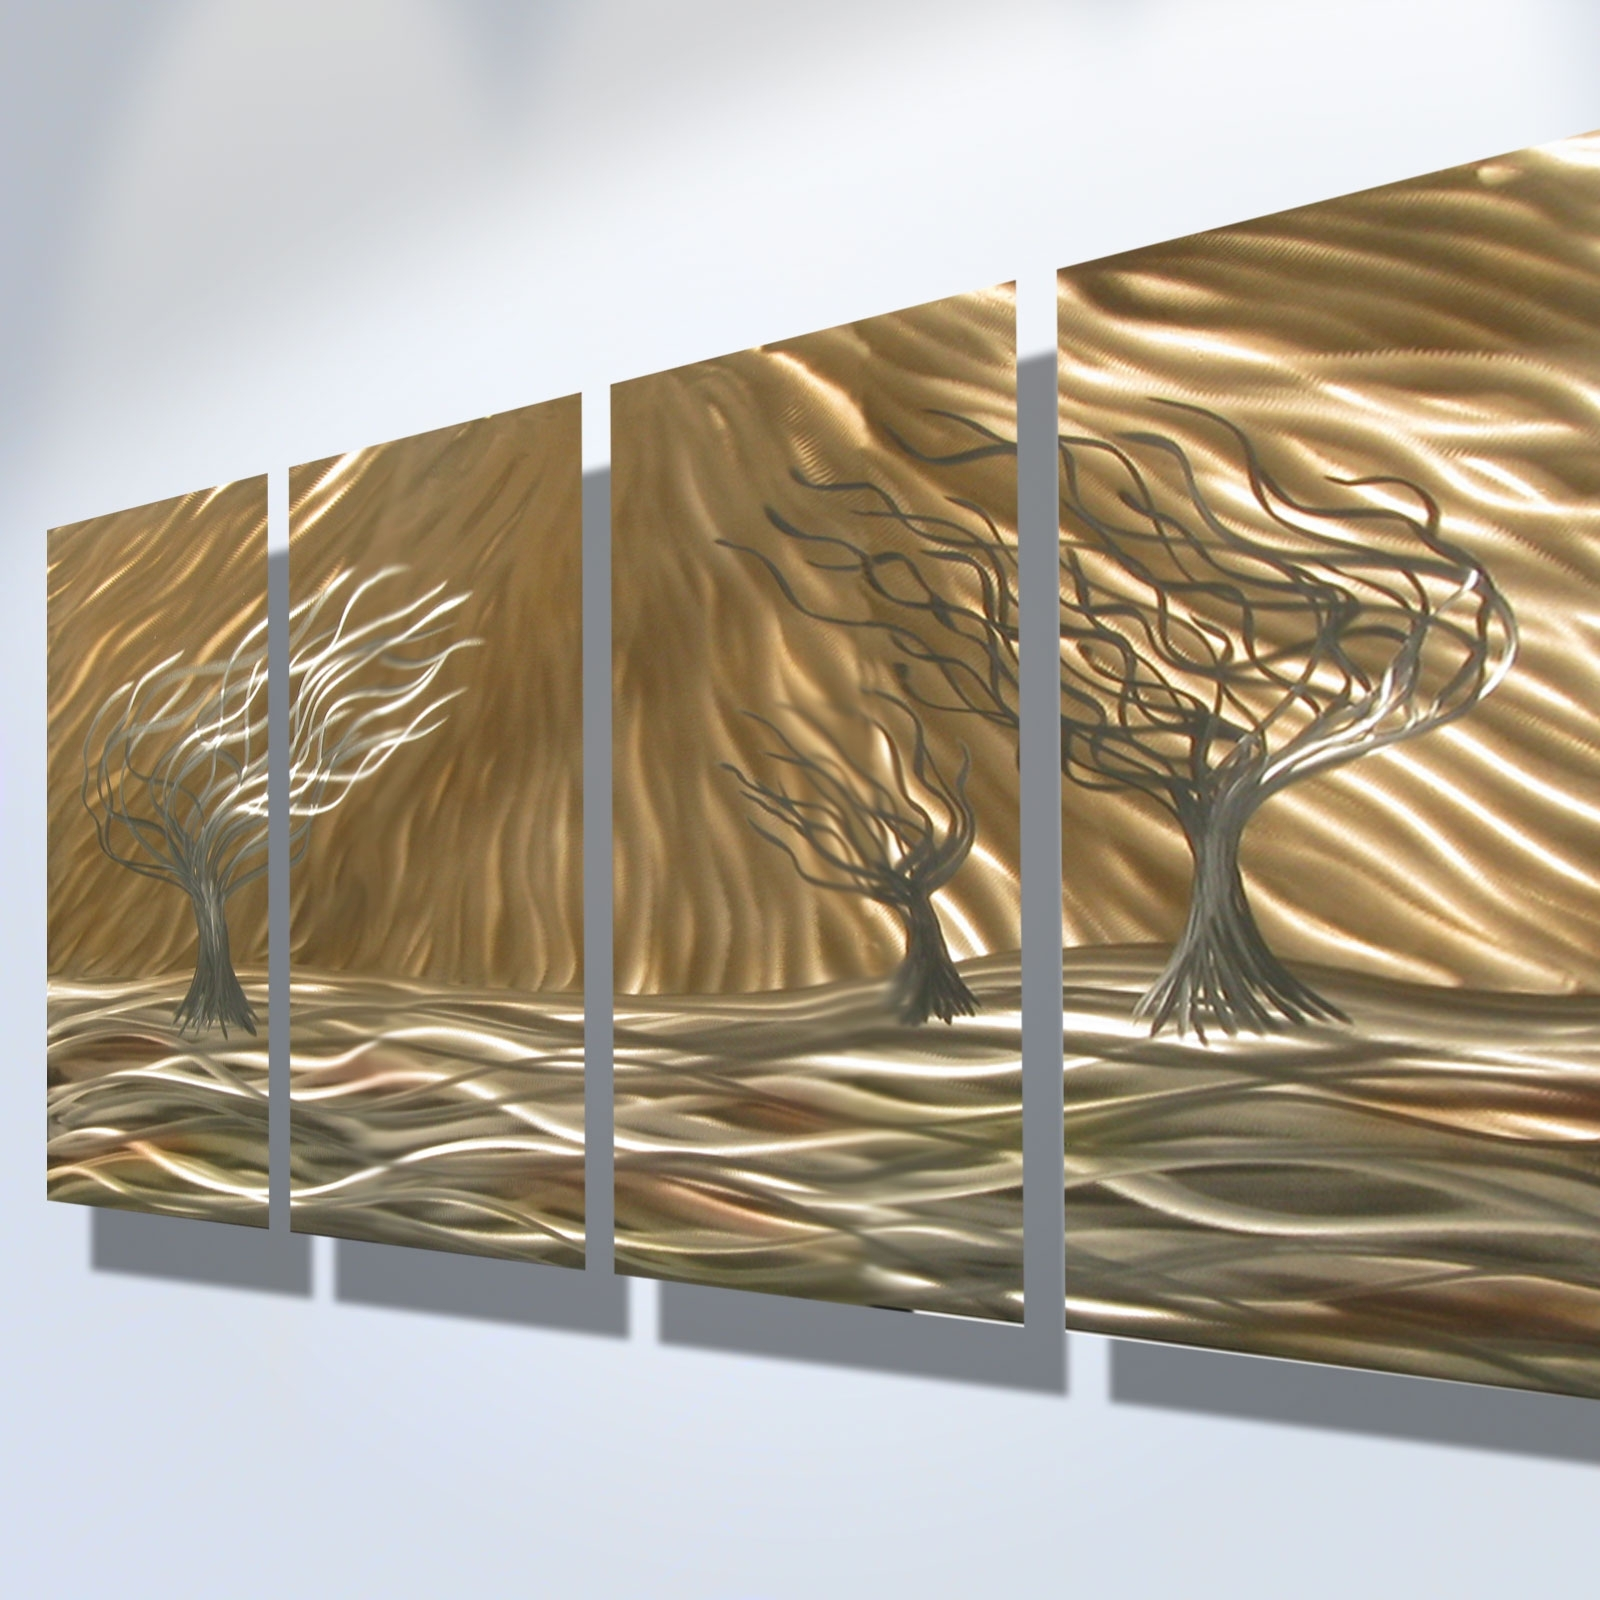 3 Trees 4 Panel – Abstract Metal Wall Art Contemporary Modern Regarding Recent Abstract Outdoor Wall Art (View 16 of 20)